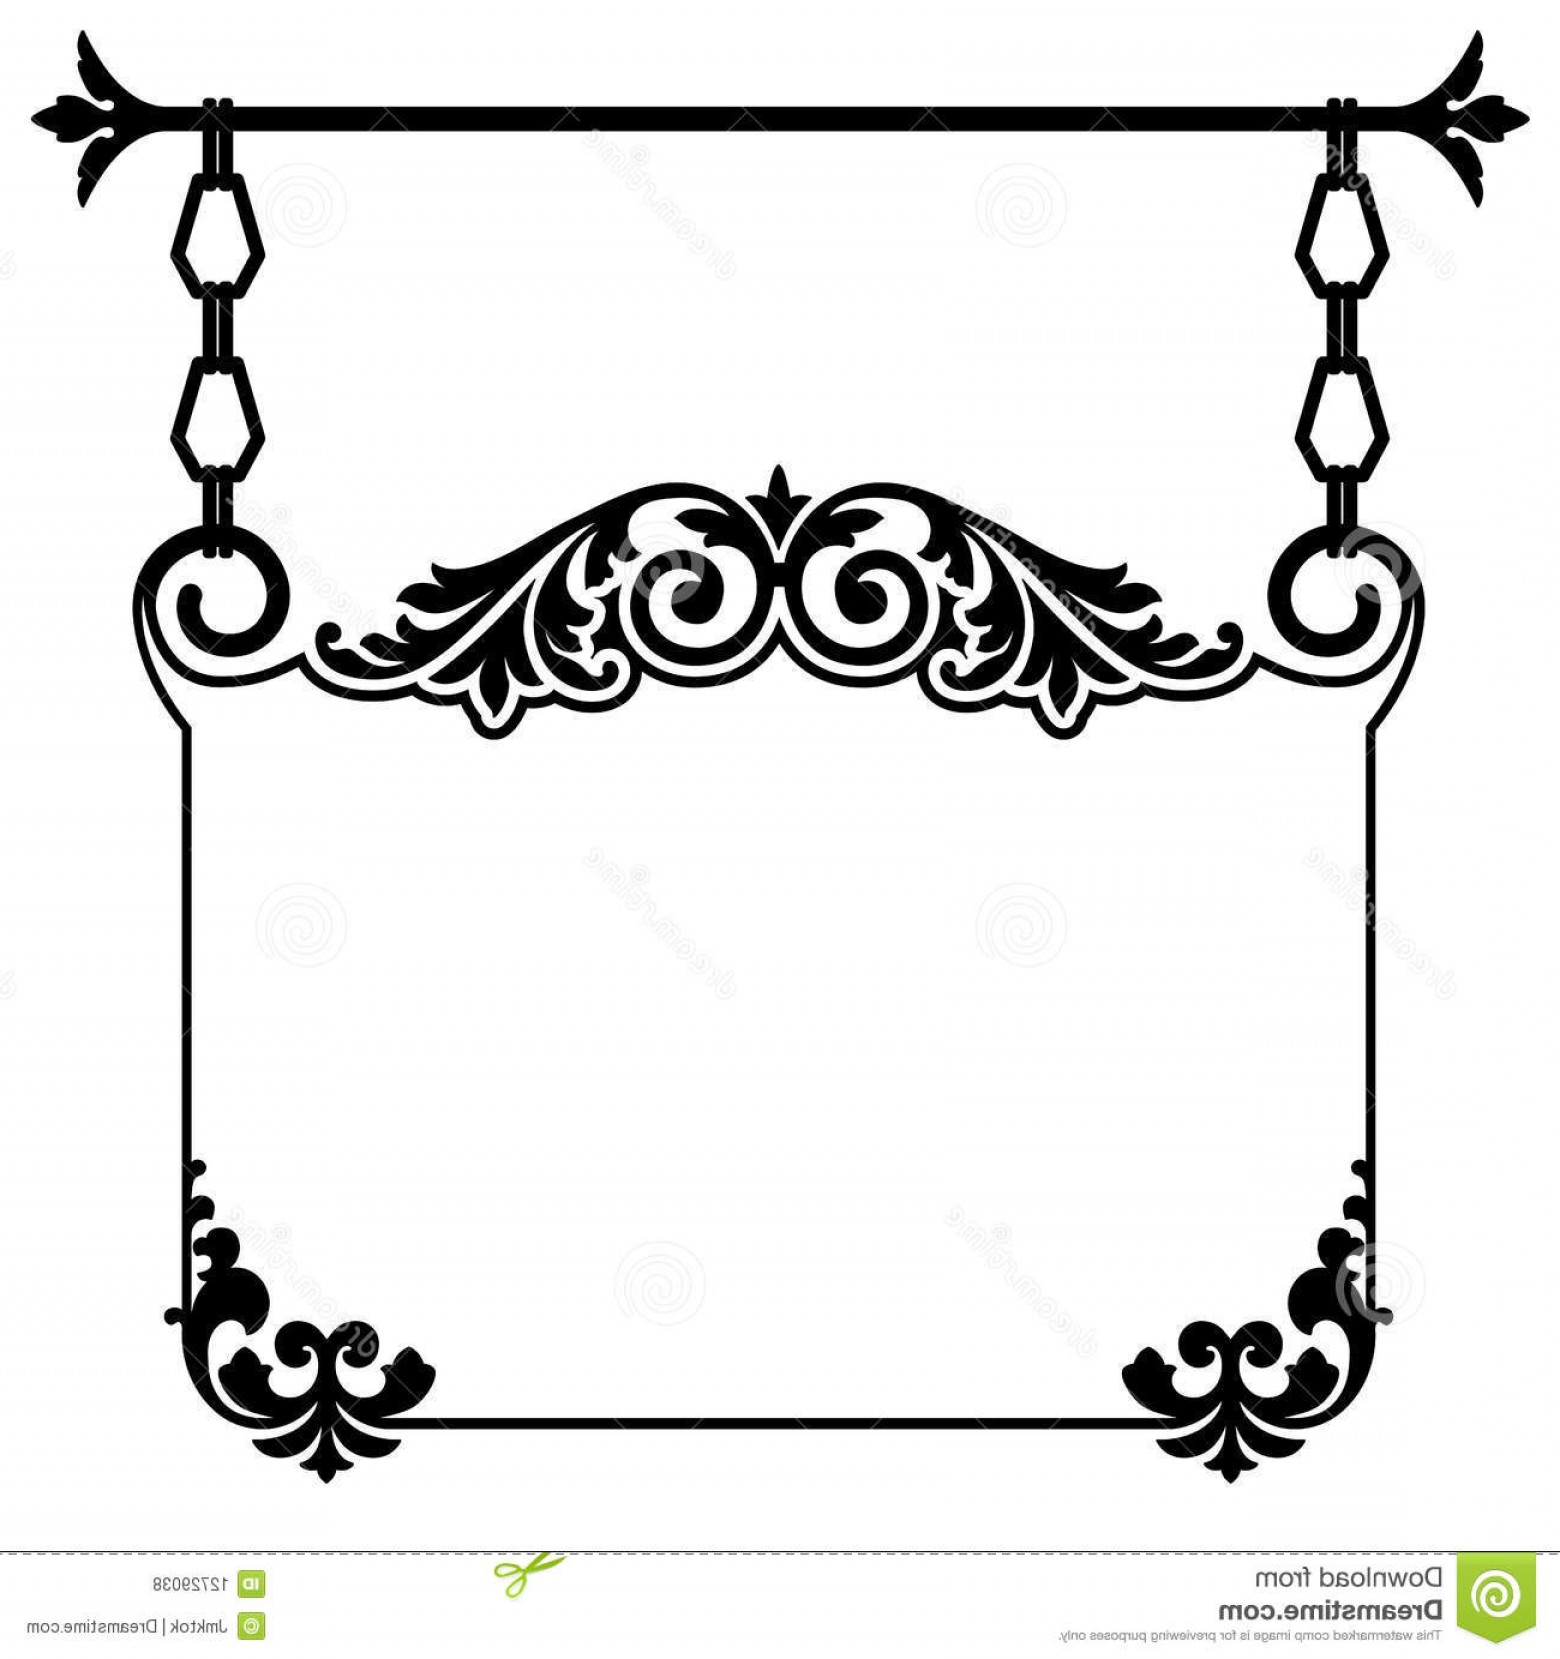 Vintage Sign Vector Clip Art: Royalty Free Stock Photos Vintage Hanging Sign Image